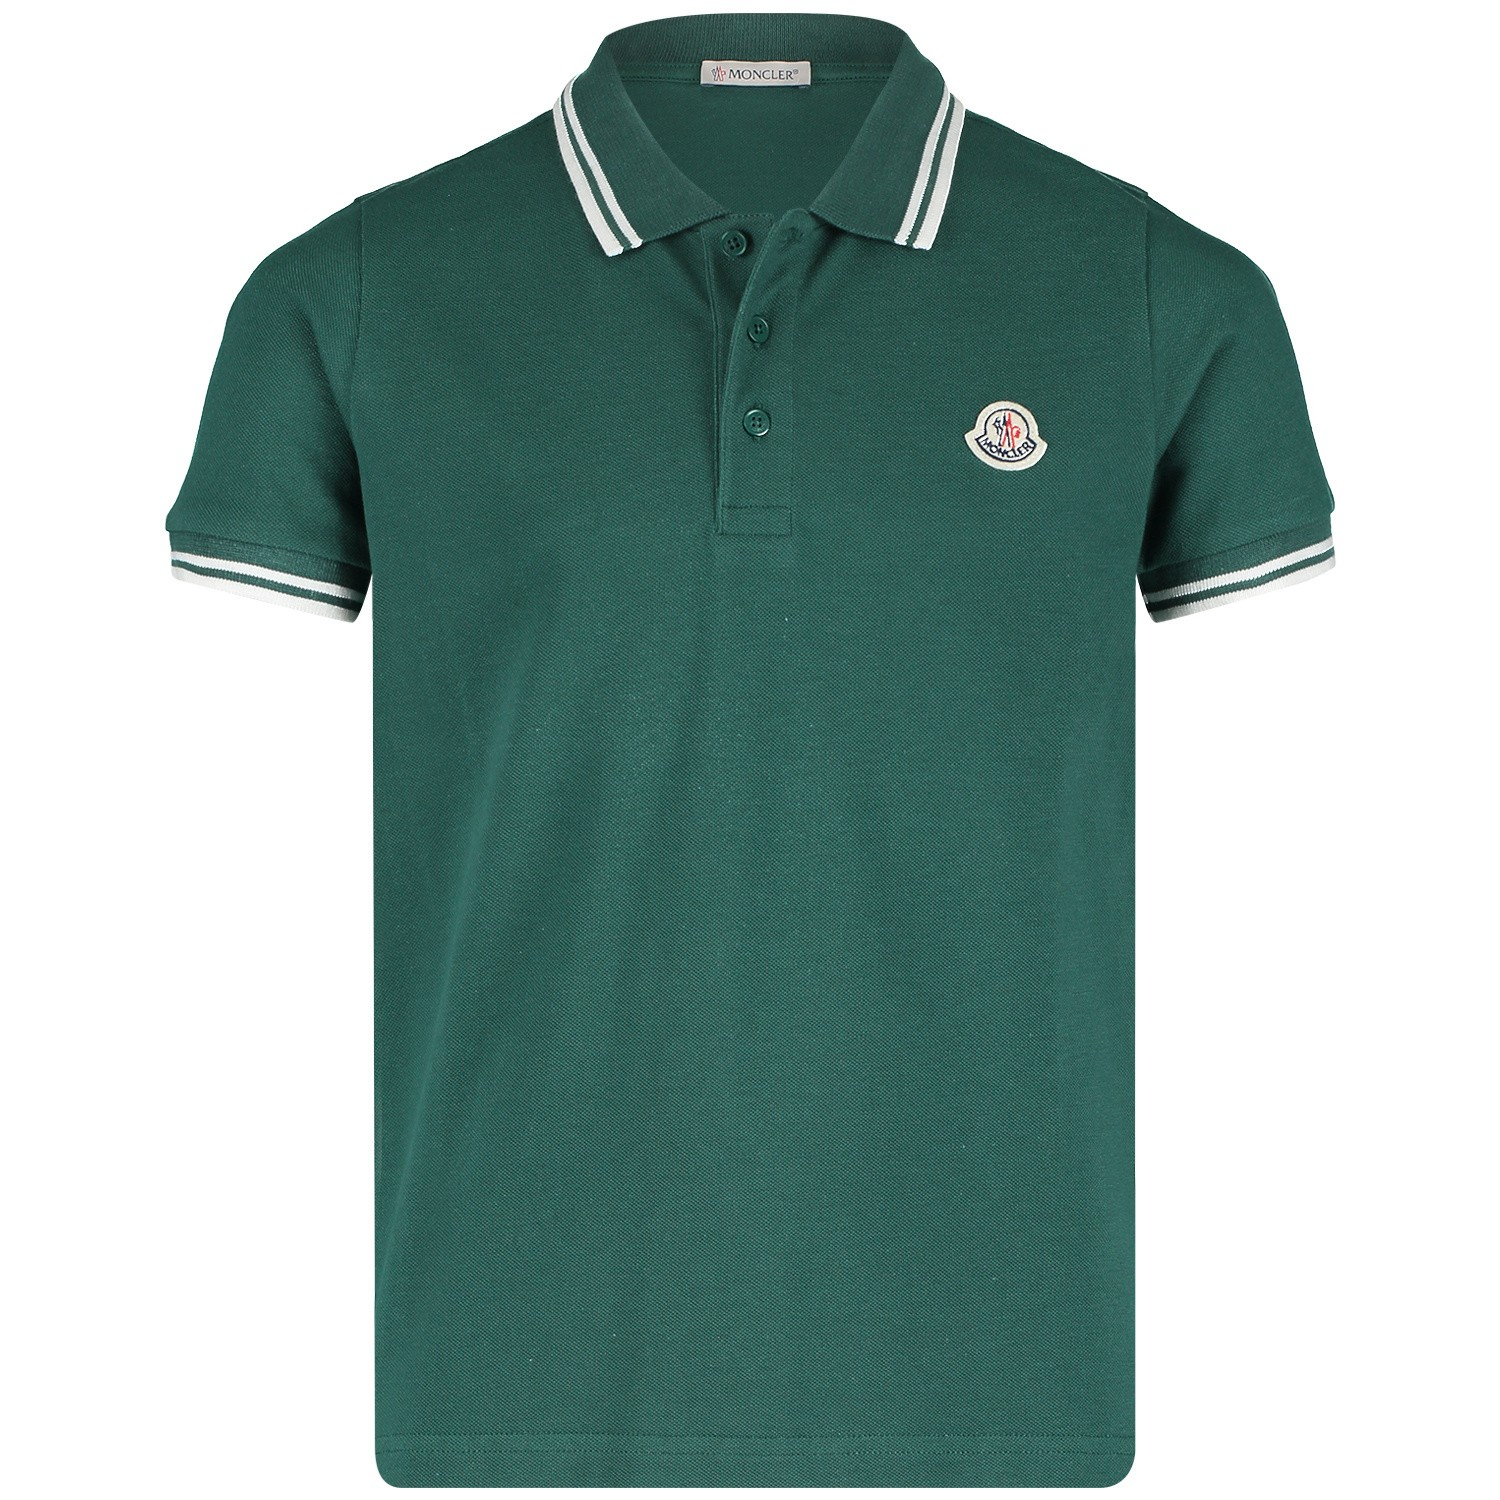 a6ff7054 Picture of Moncler 8306505 kids polo shirt dark green